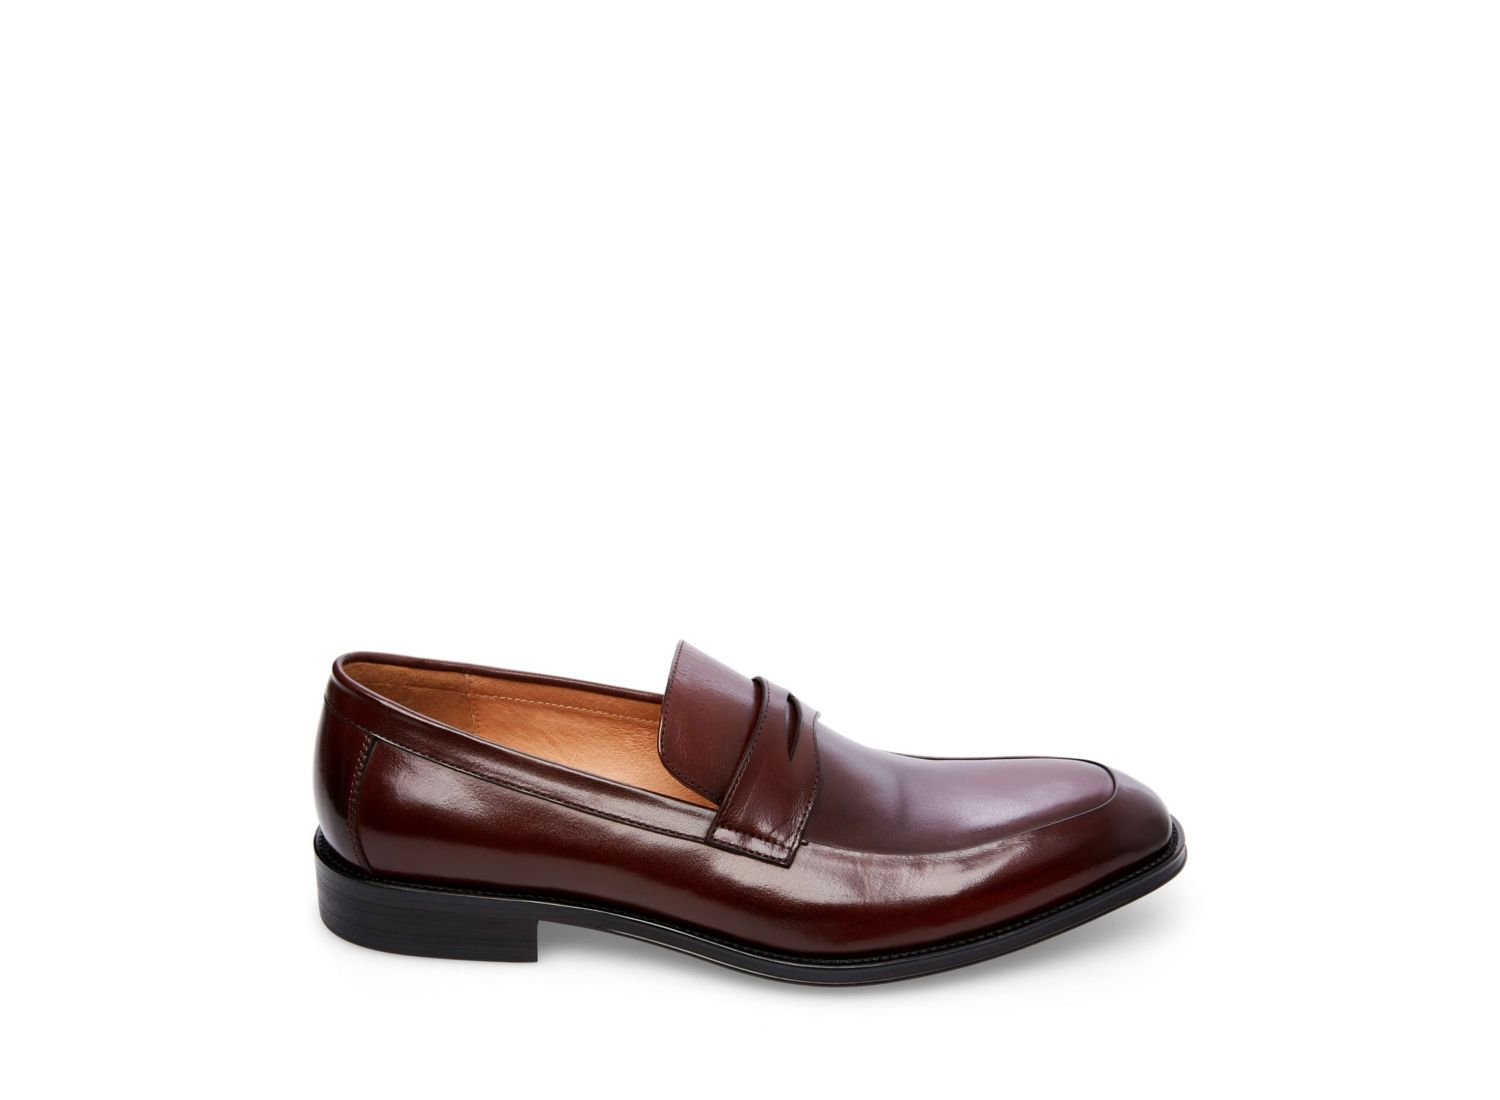 HOFFMAN WINE LEATHER - Steve Madden